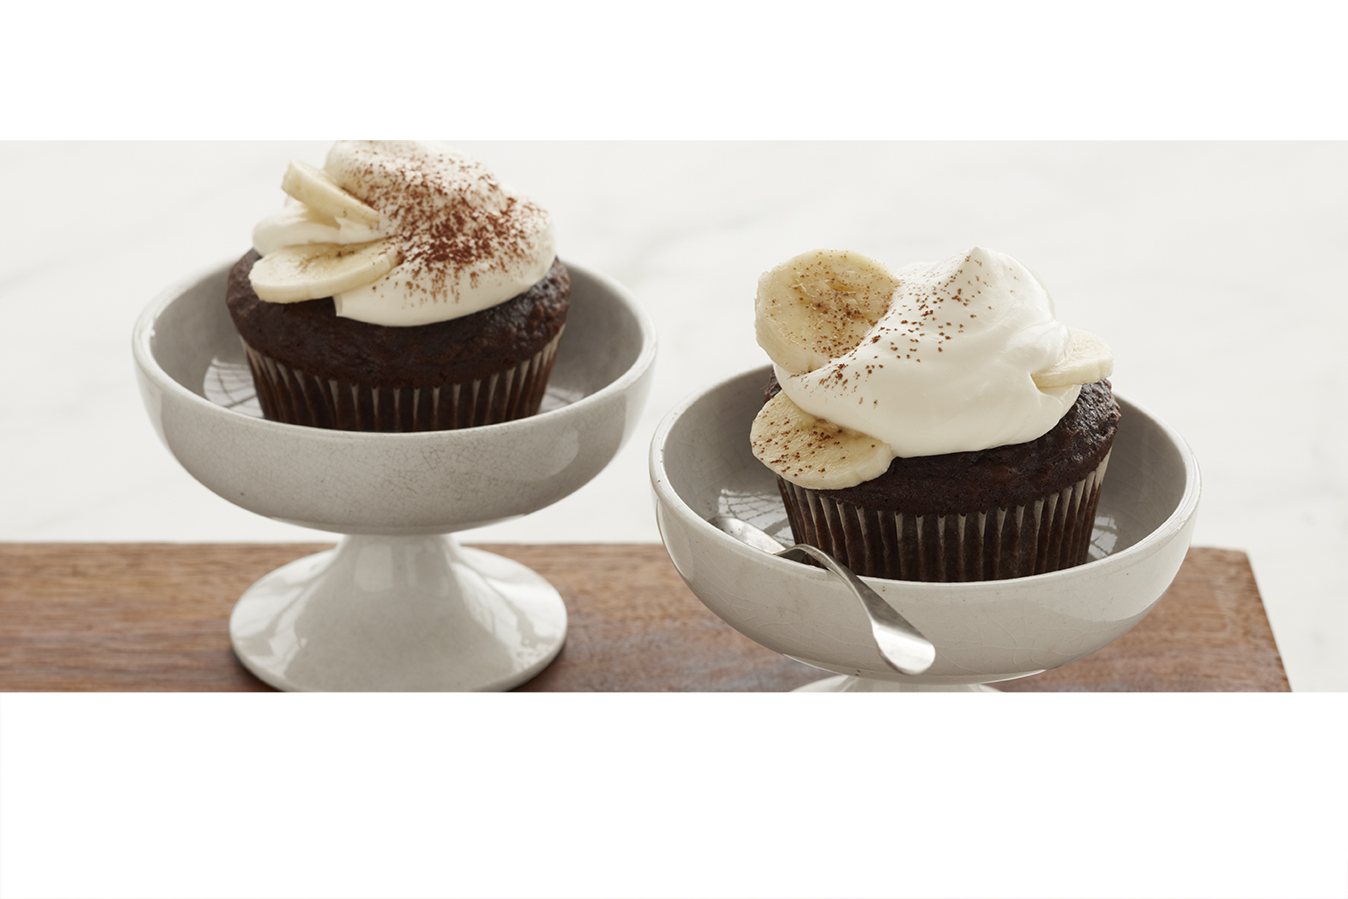 Fudge 'n' Banana Cupcakes